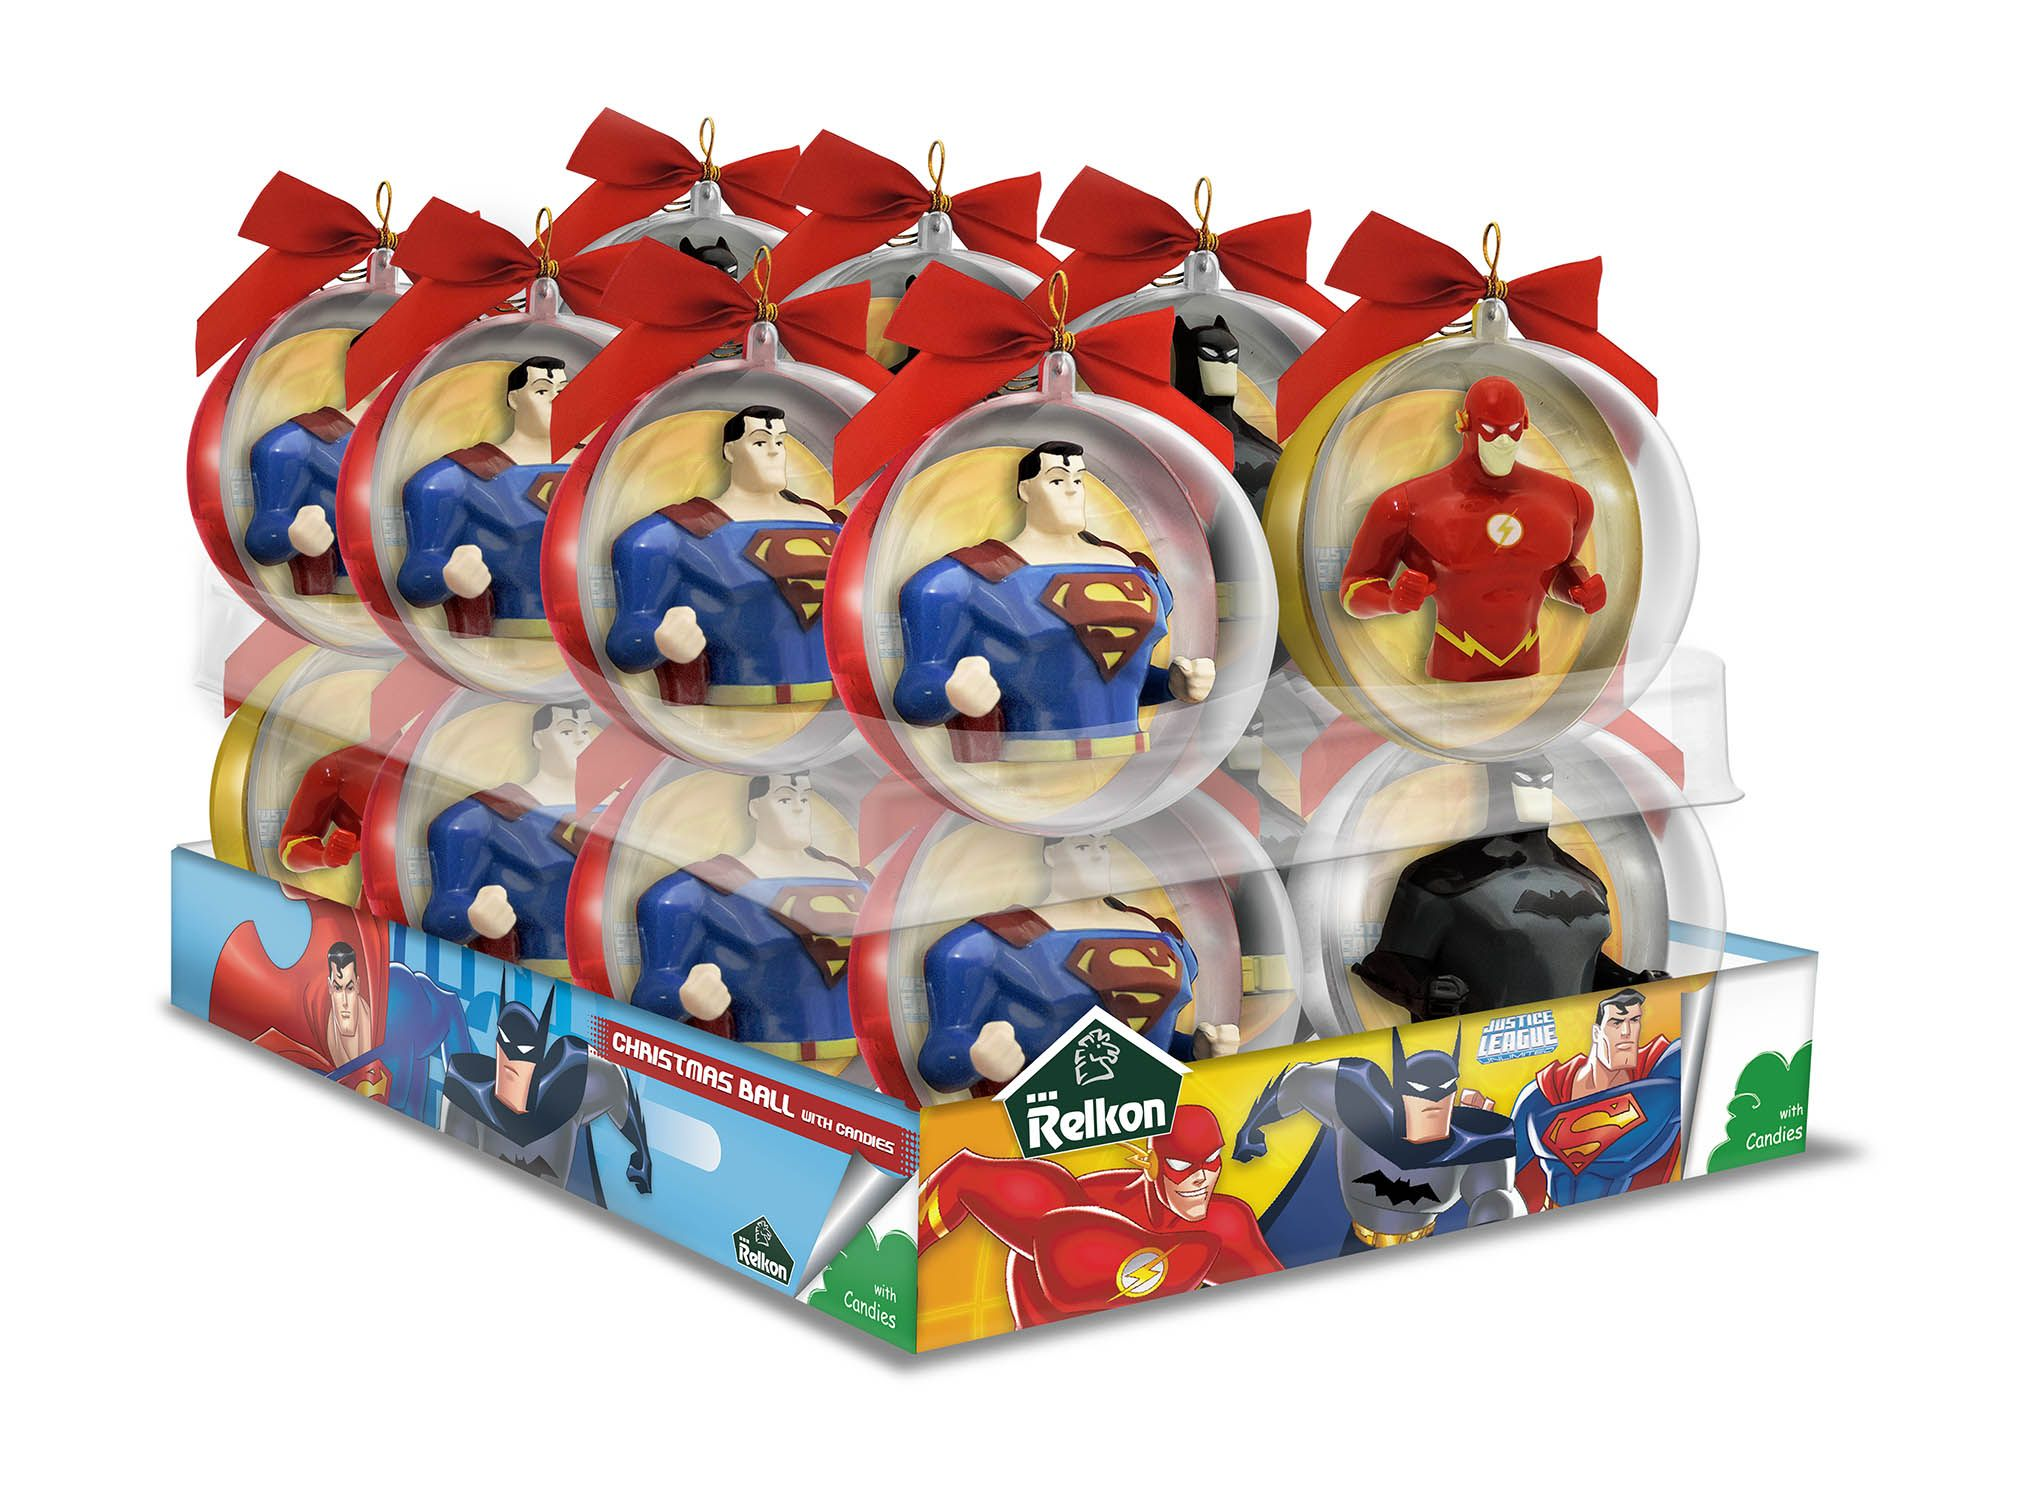 Justice League Food and Promotions Christmas balls